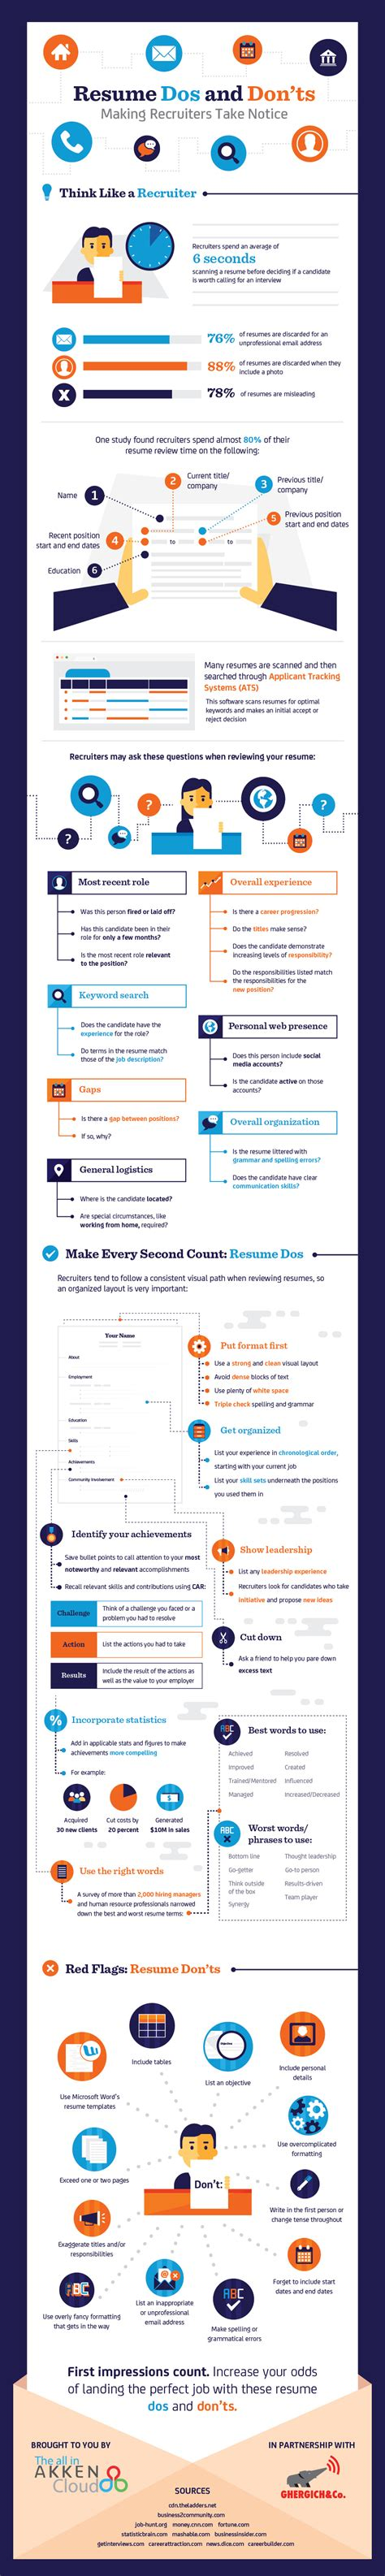 resume dos and don ts infographic winterwyman